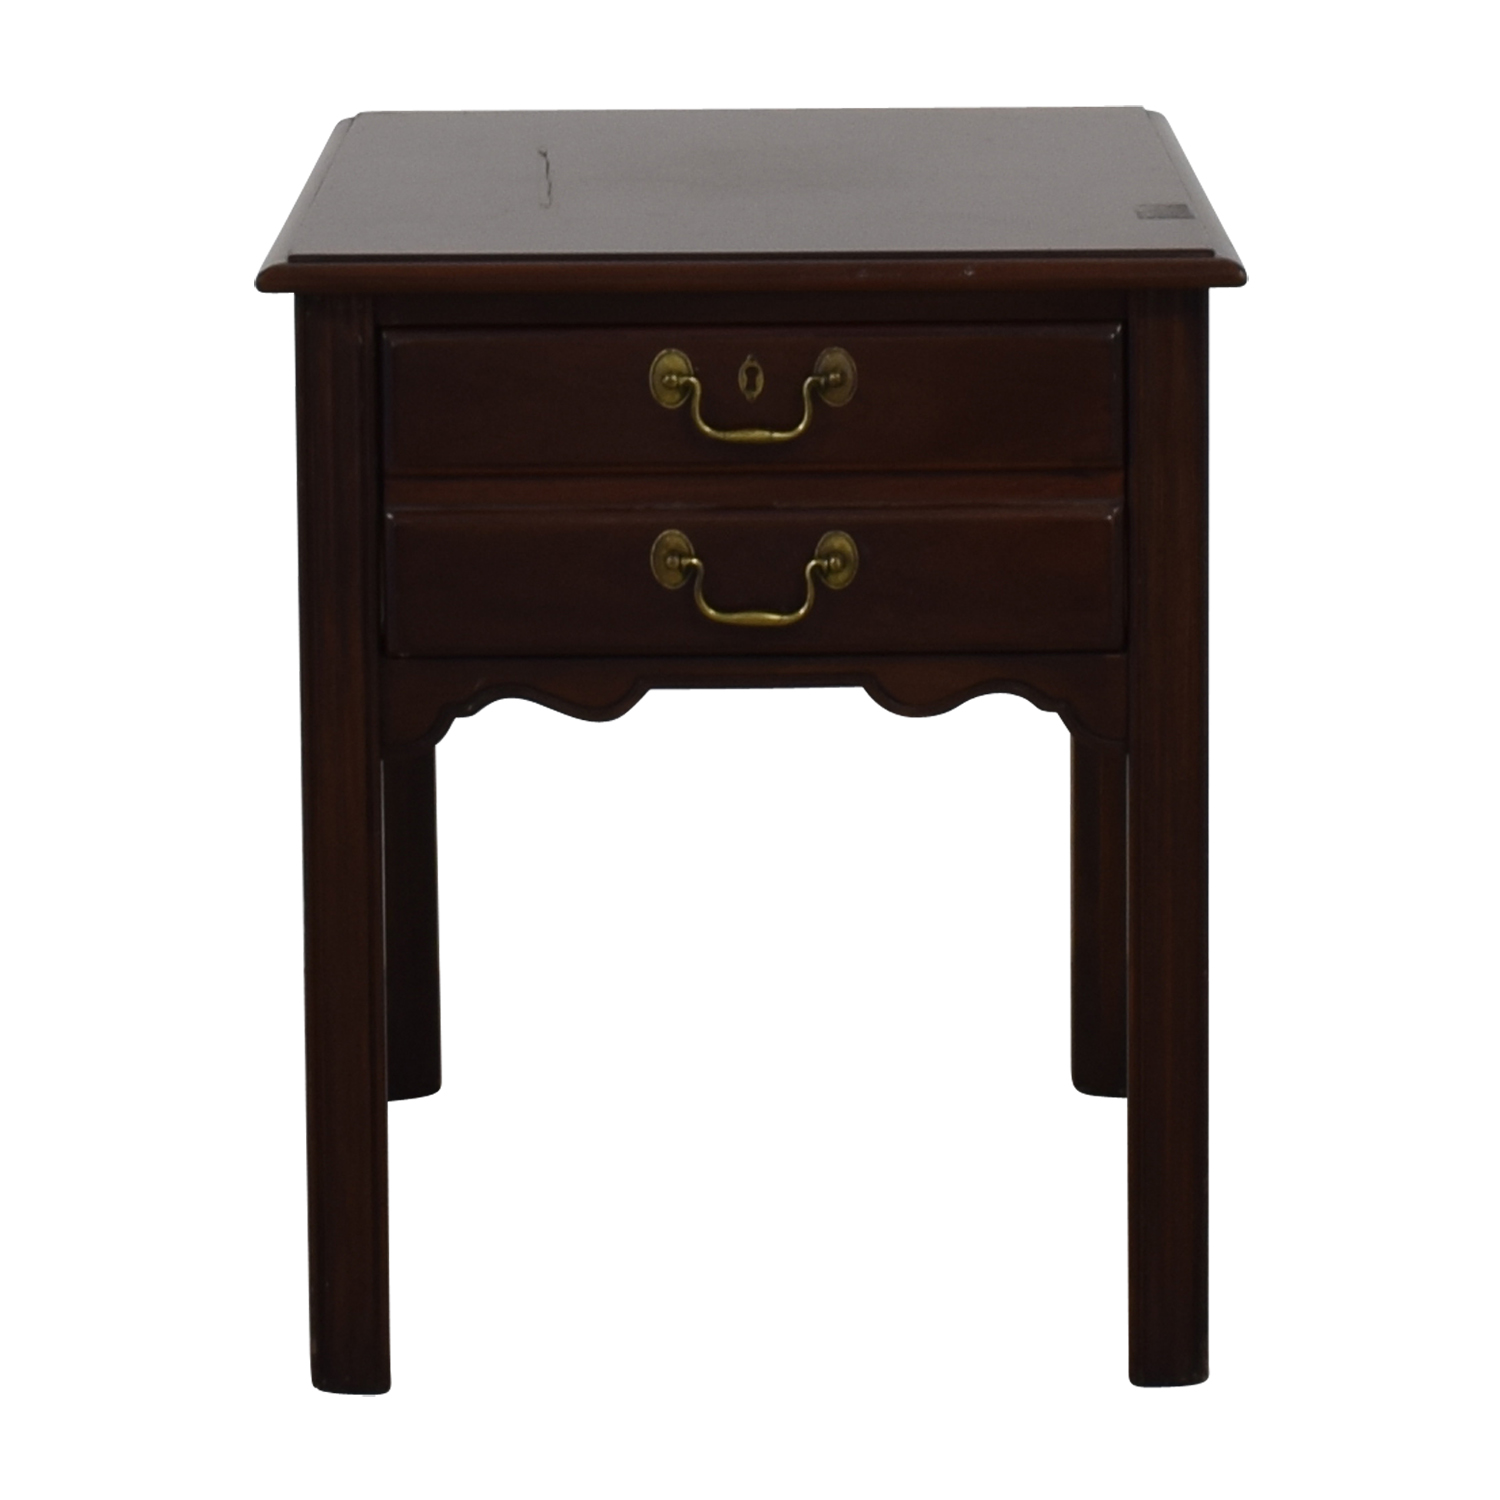 Drexel Drexel Wood Single Drawer End Table dimensions